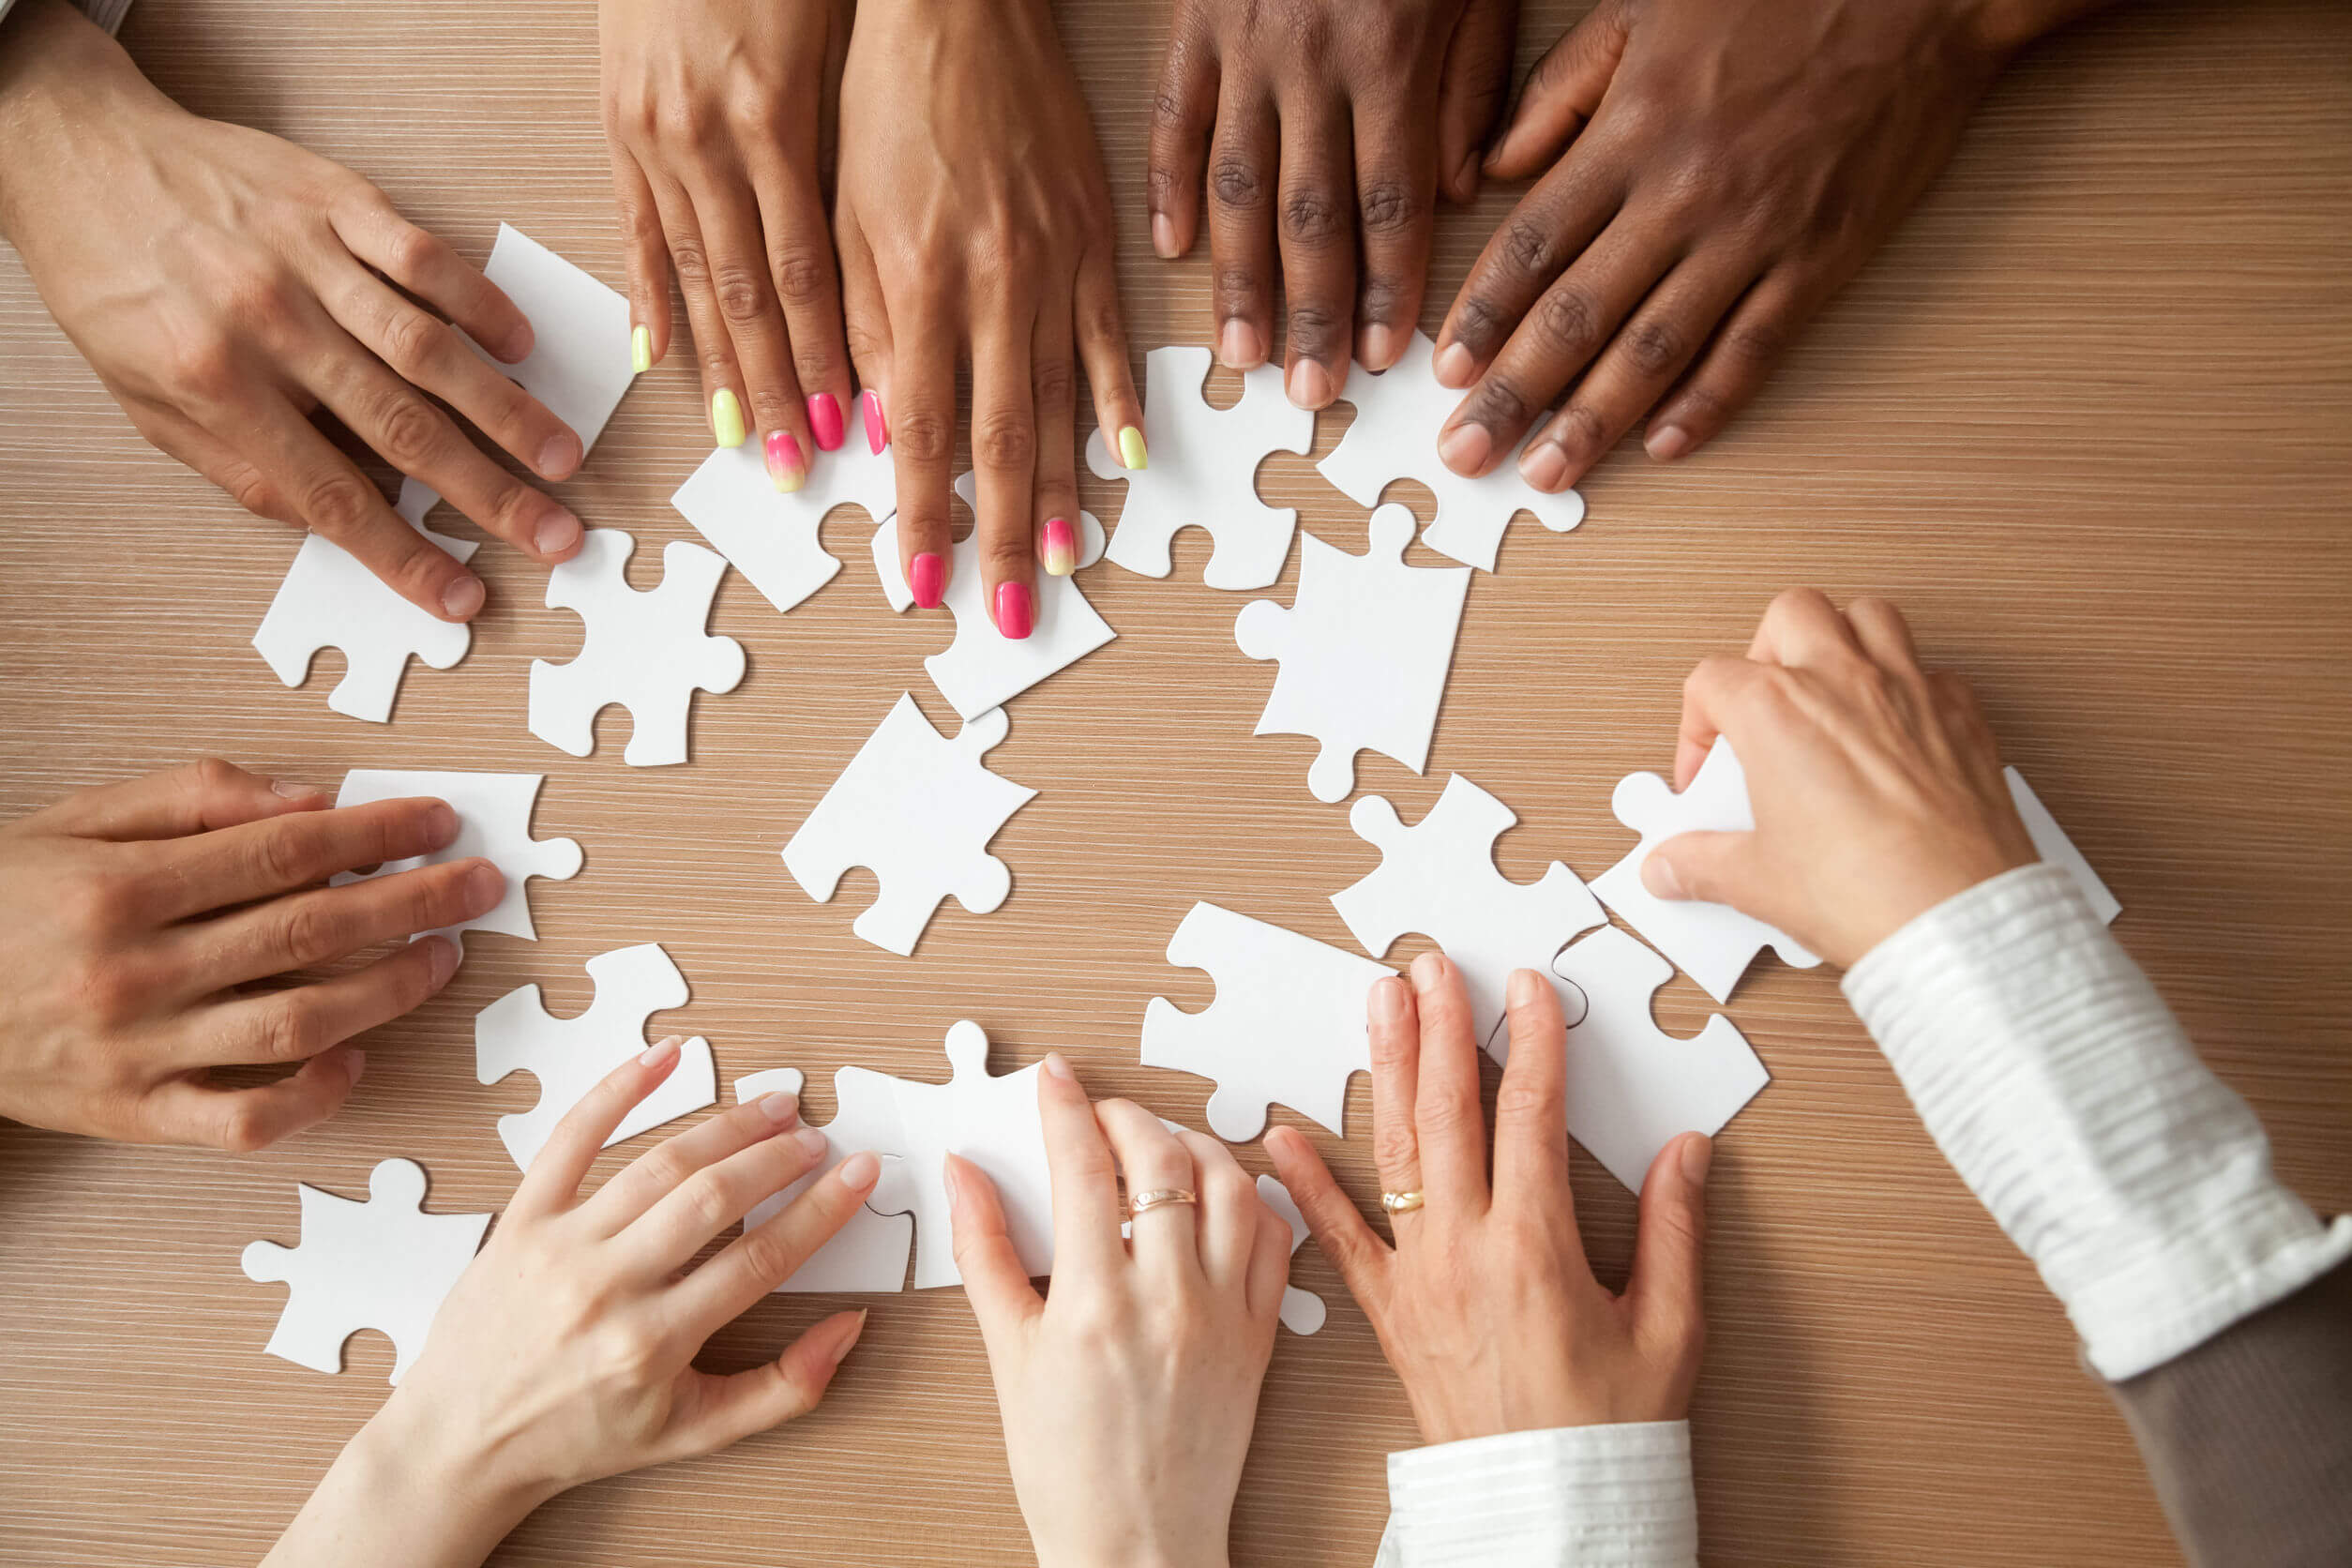 How to Make the Most of Team Building Activities